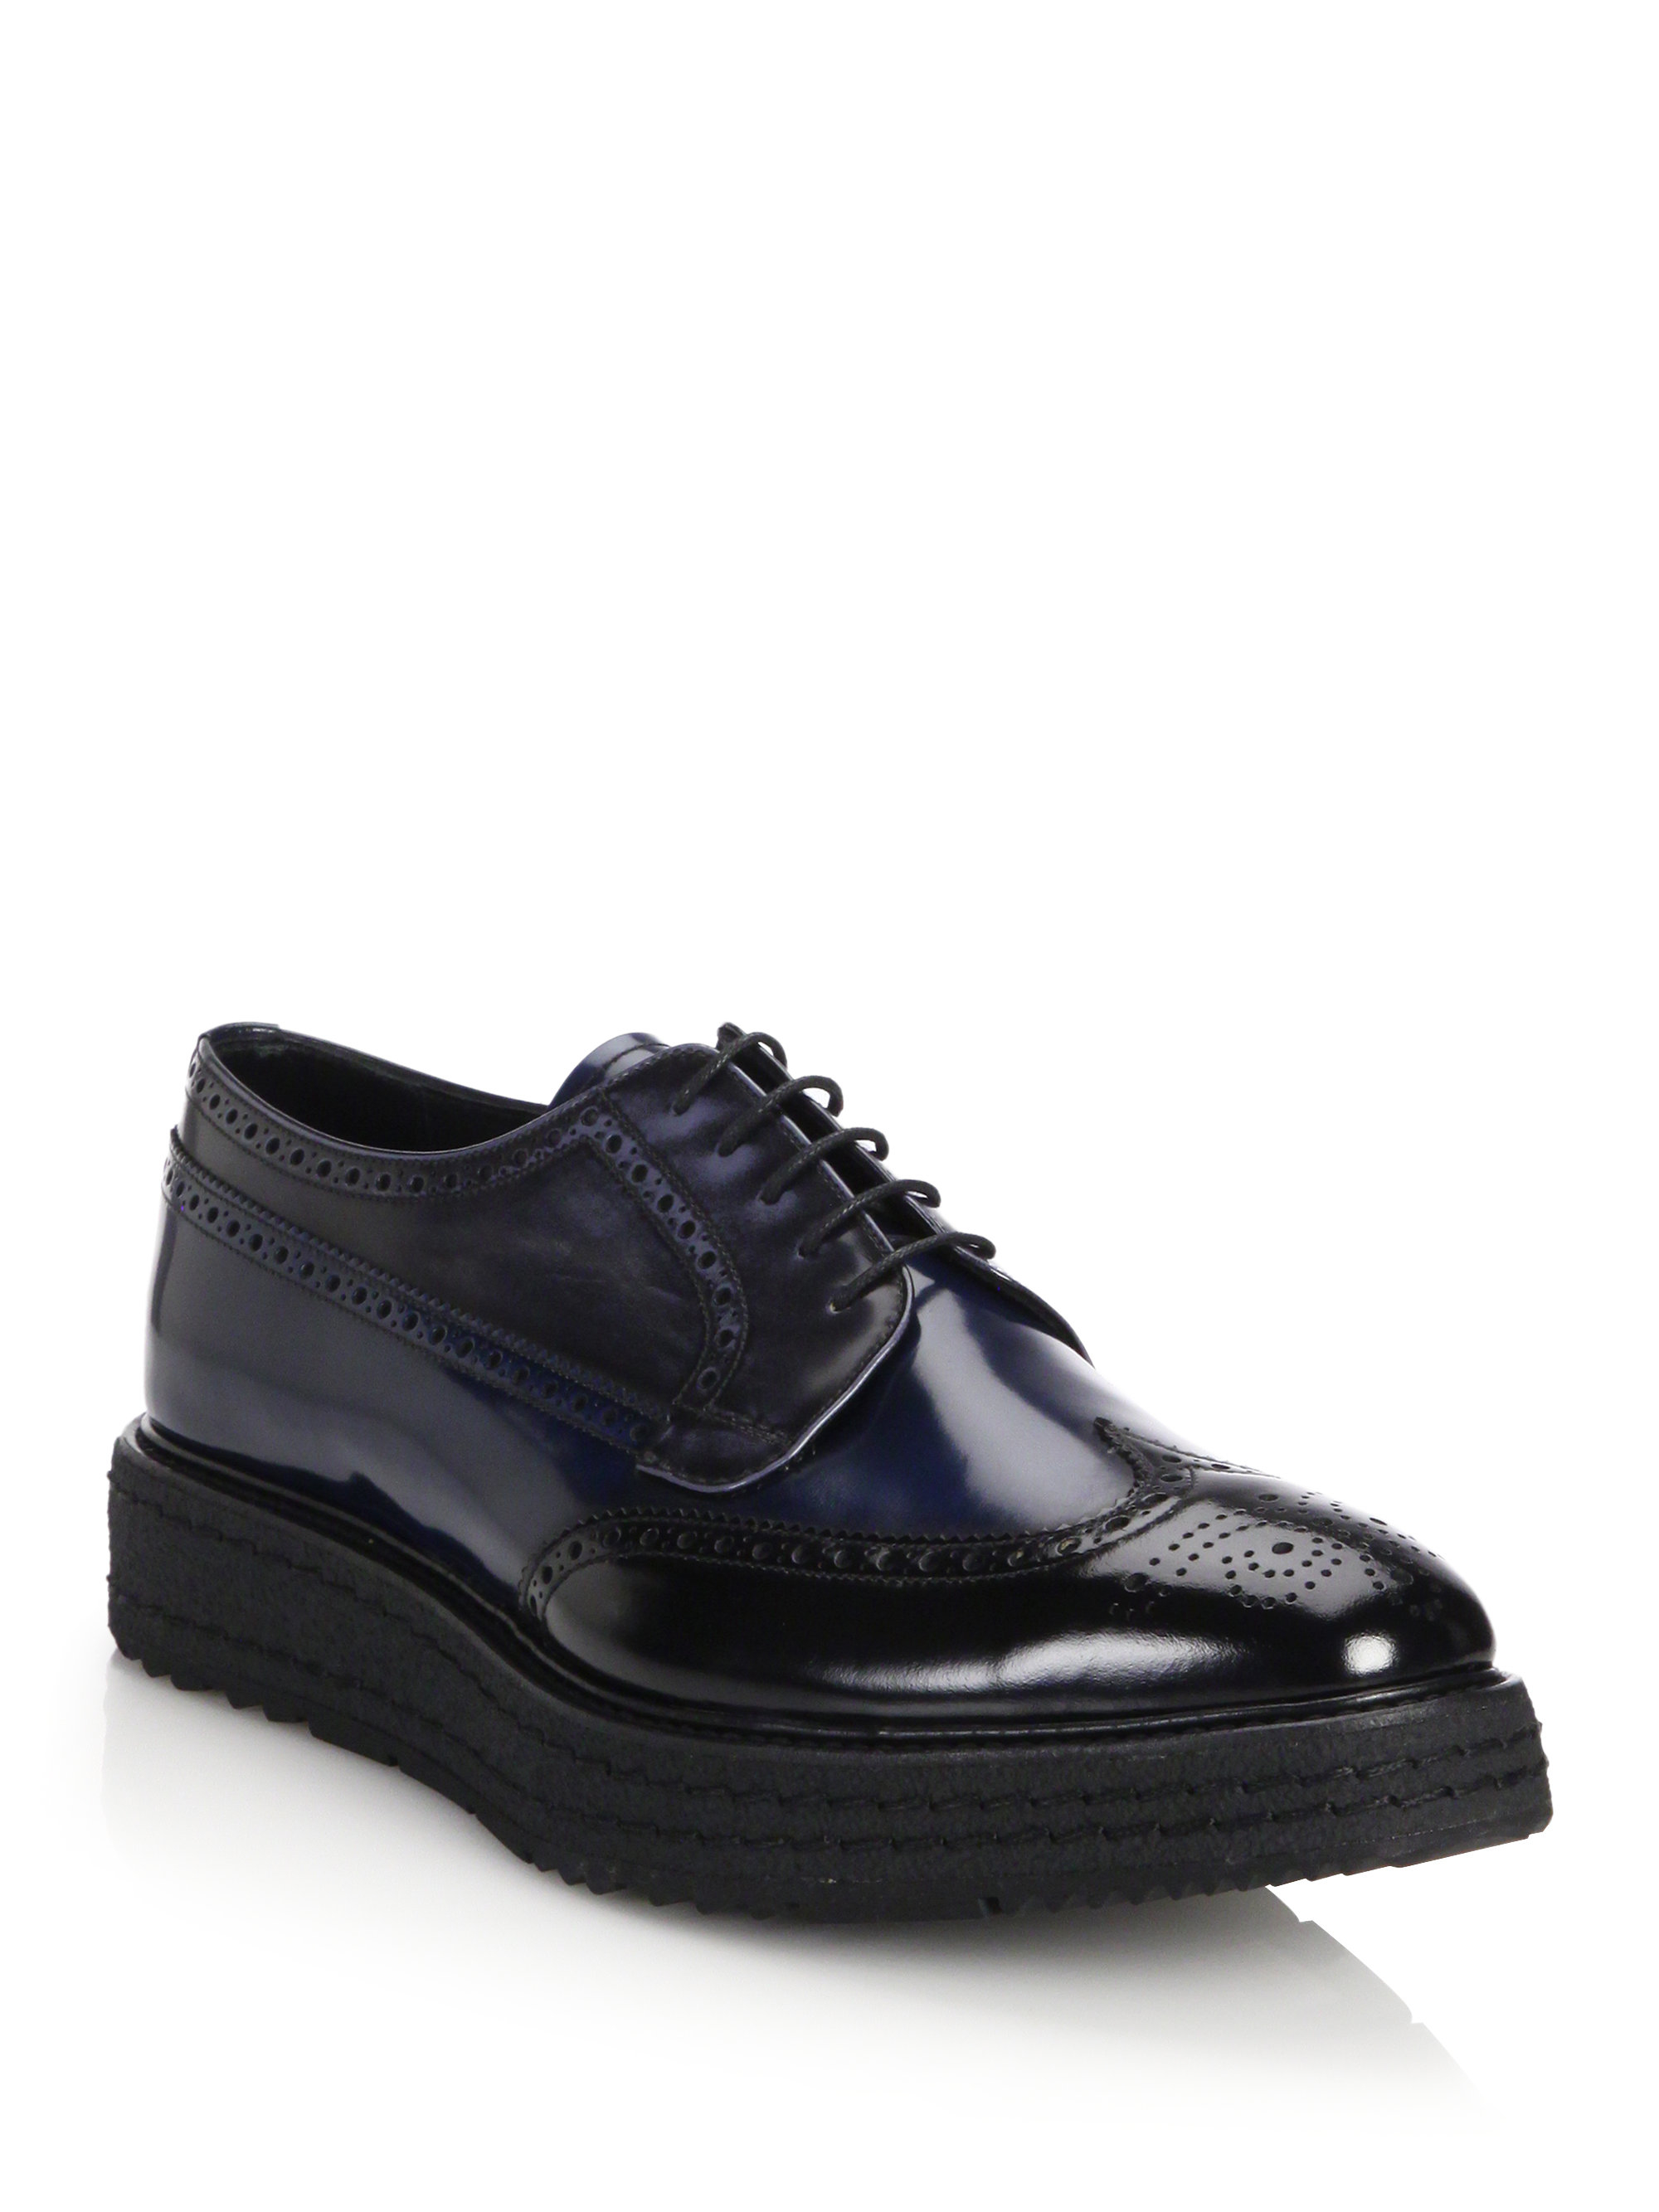 Prada Creeper Lug Sole Leather Derby Shoes In Black For